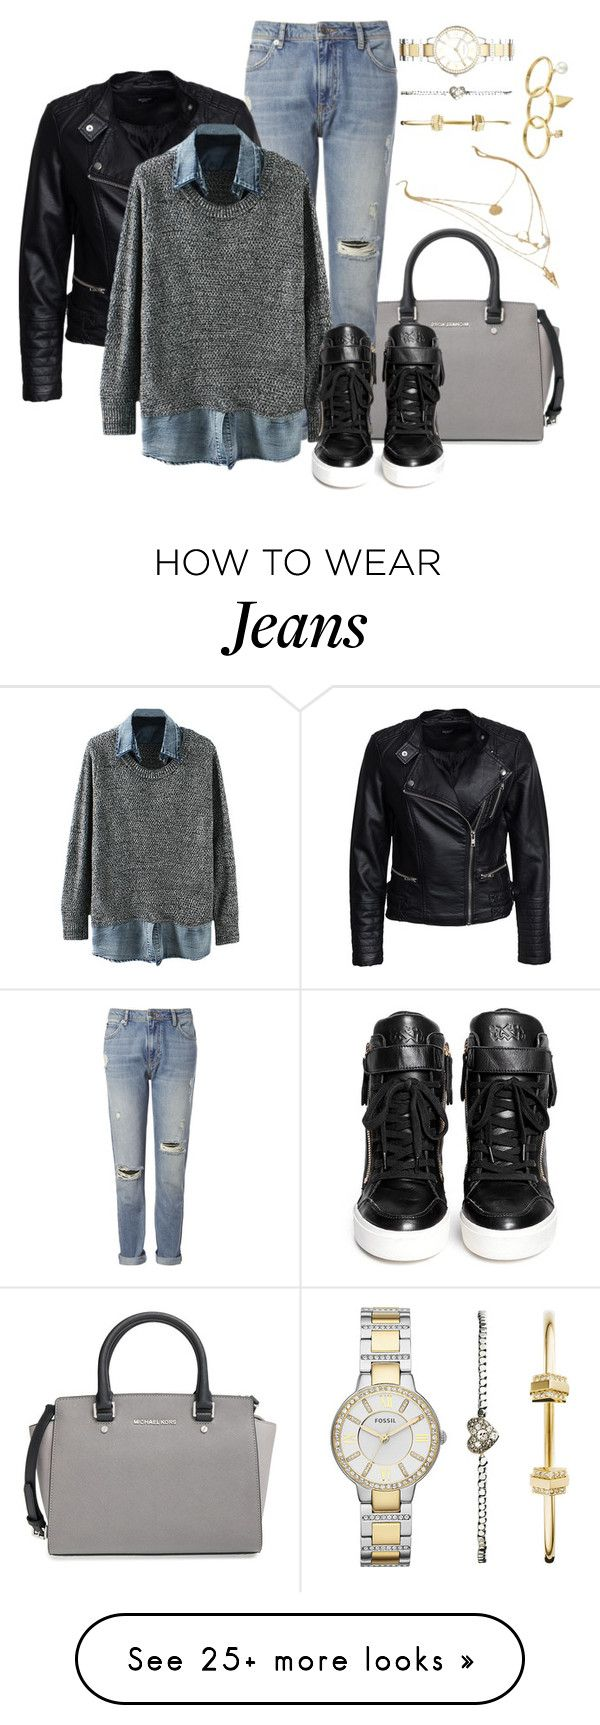 """""""jeans1"""" by yanoch on Polyvore featuring MICHAEL Michael Kors, Whistles, Sisters Point, Ash, FOSSIL and Rebecca Minkoff"""